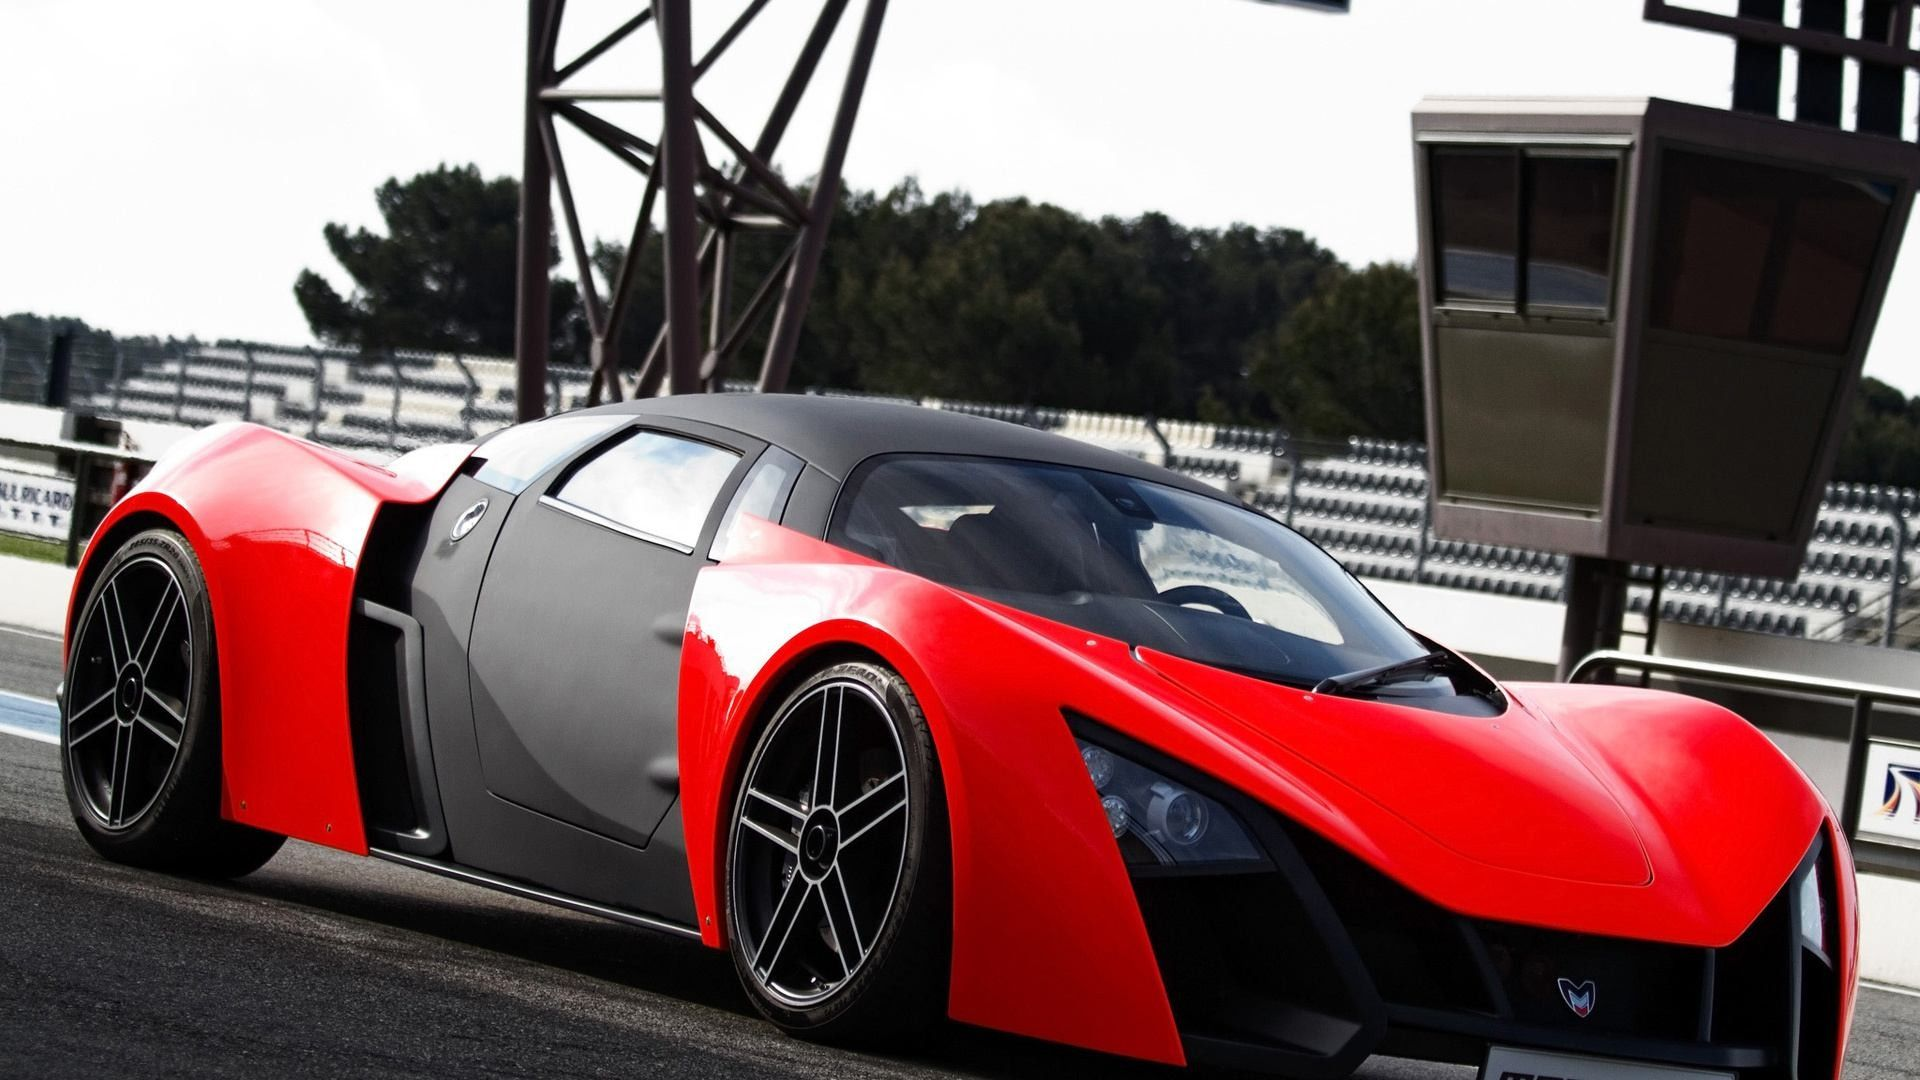 Hd Sports Marussia Red Wallpapers Red Sports Car Sports Car Wallpaper Sports Car